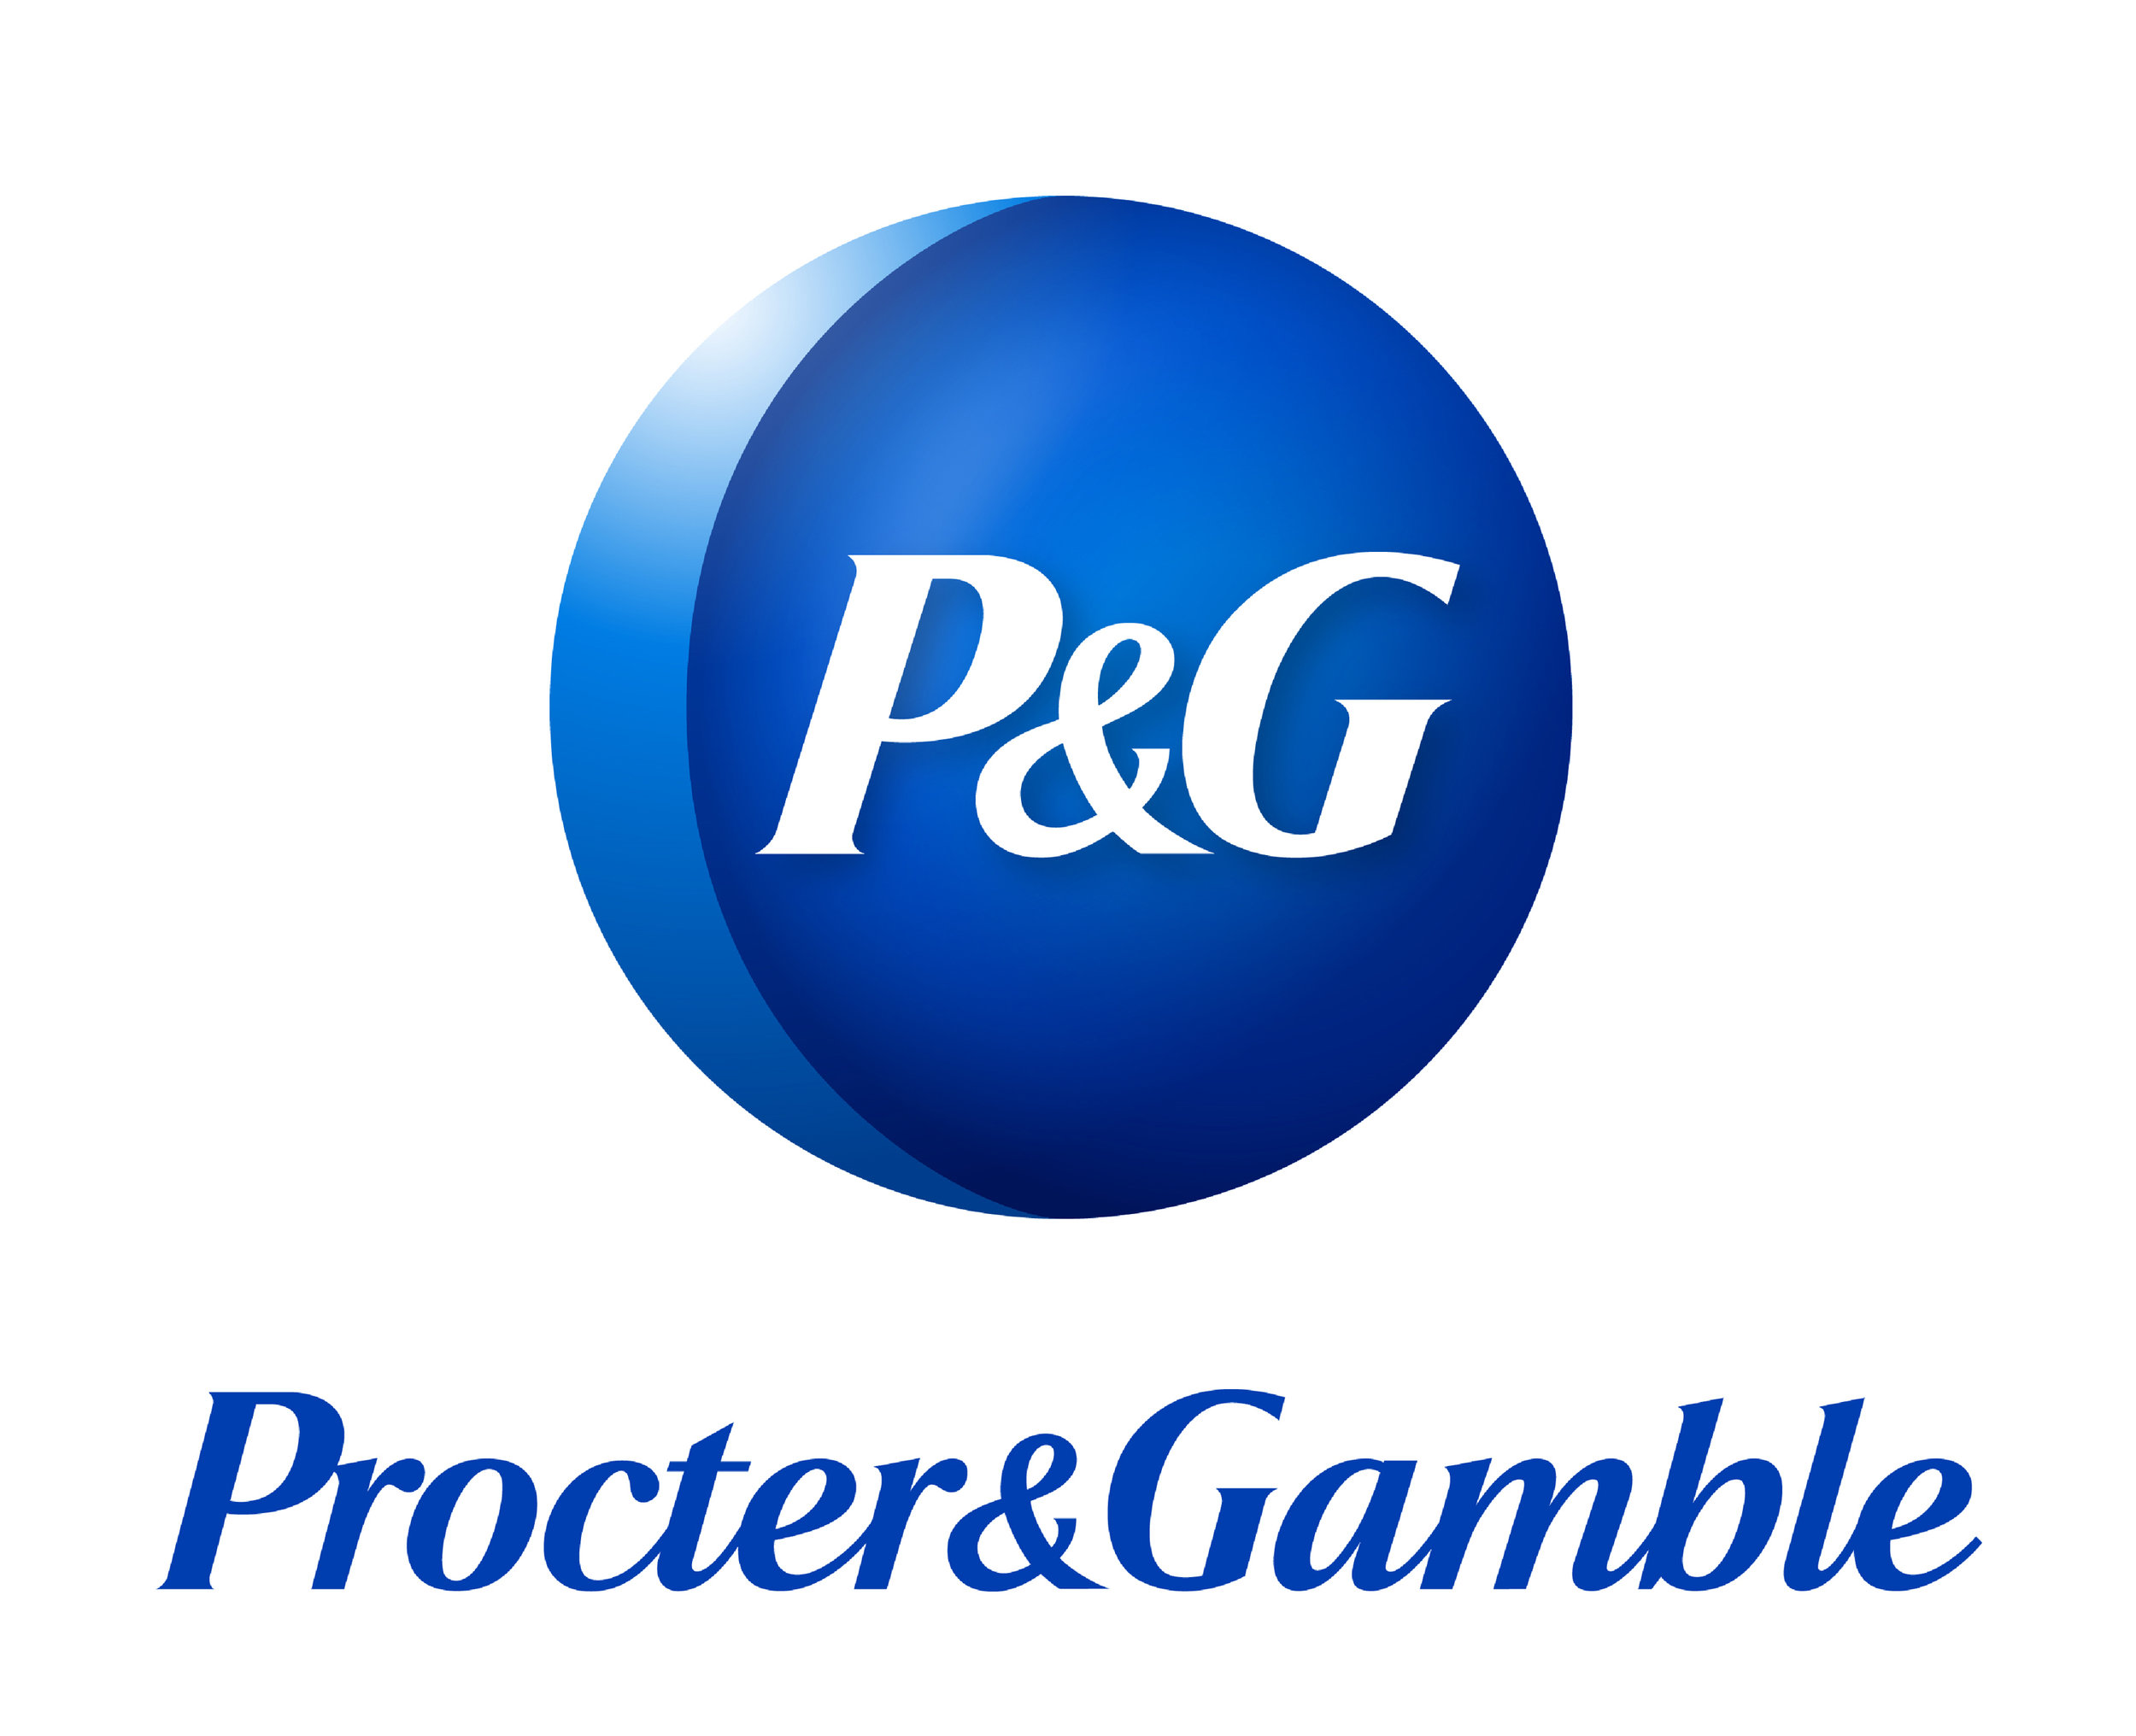 Procter & Gamble, P&G - Julia Ferrari comédienne voix off femme - French voice actress